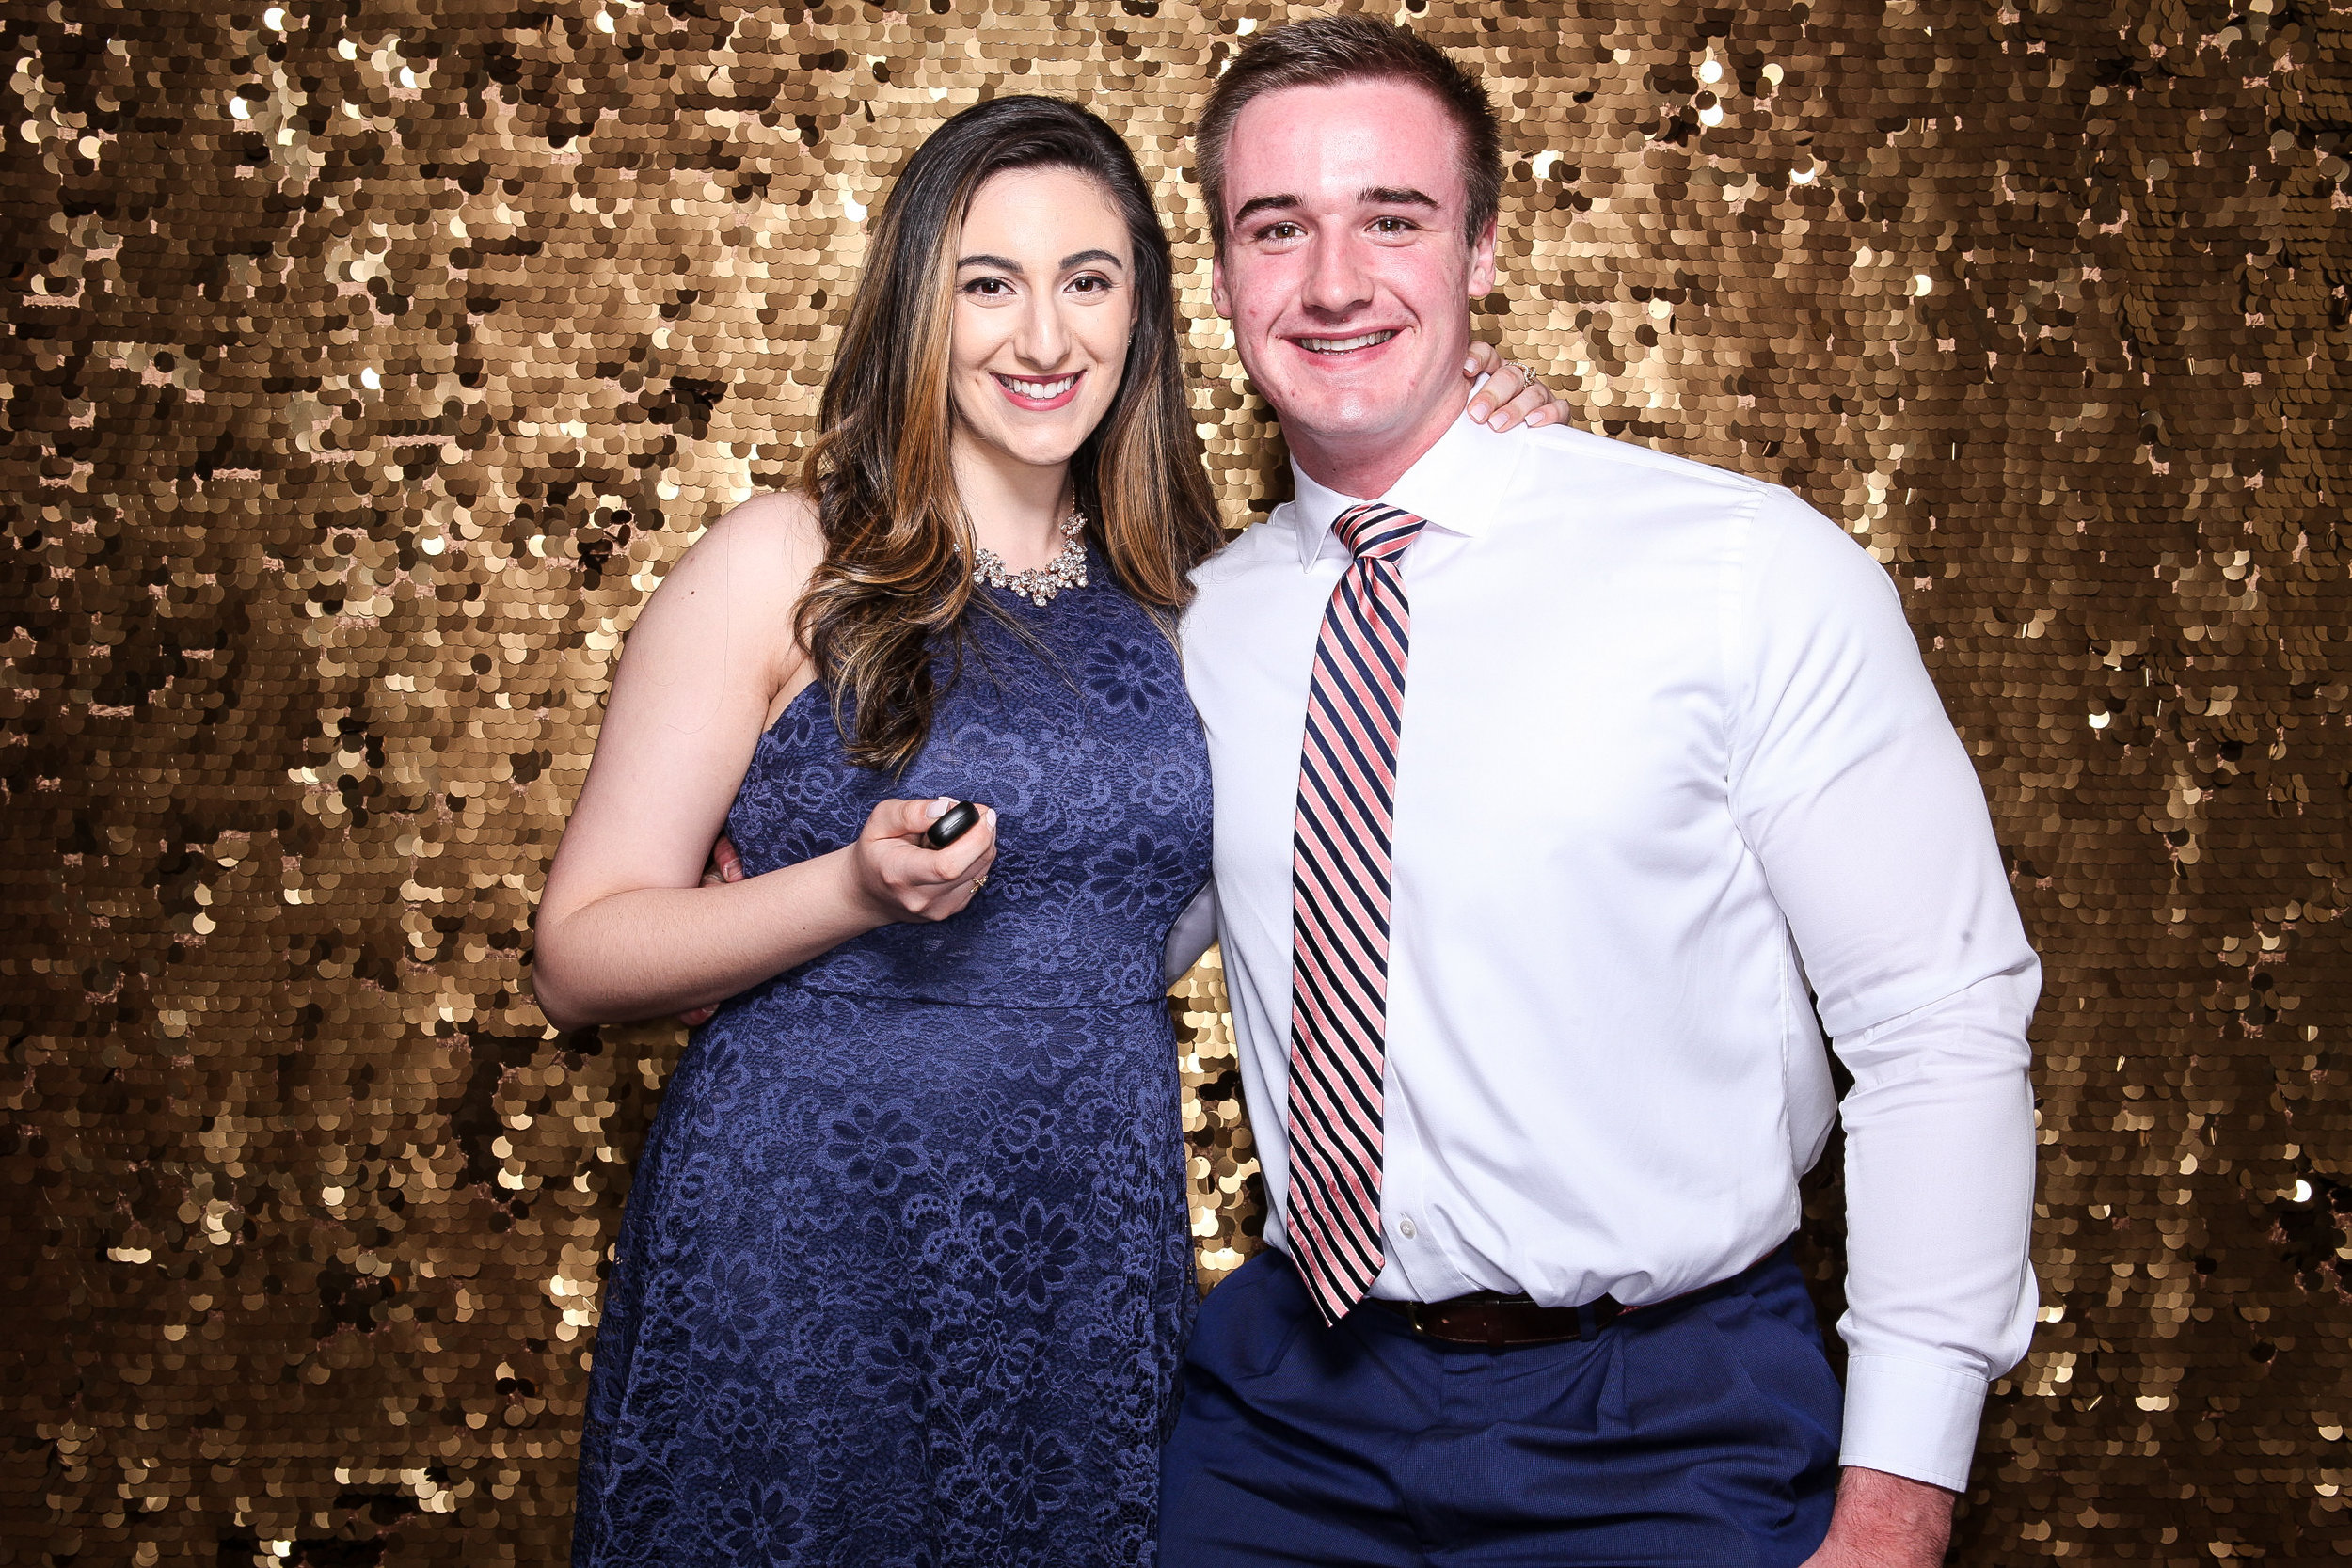 20190503_Adelphi_Senior_Formal-312.jpg